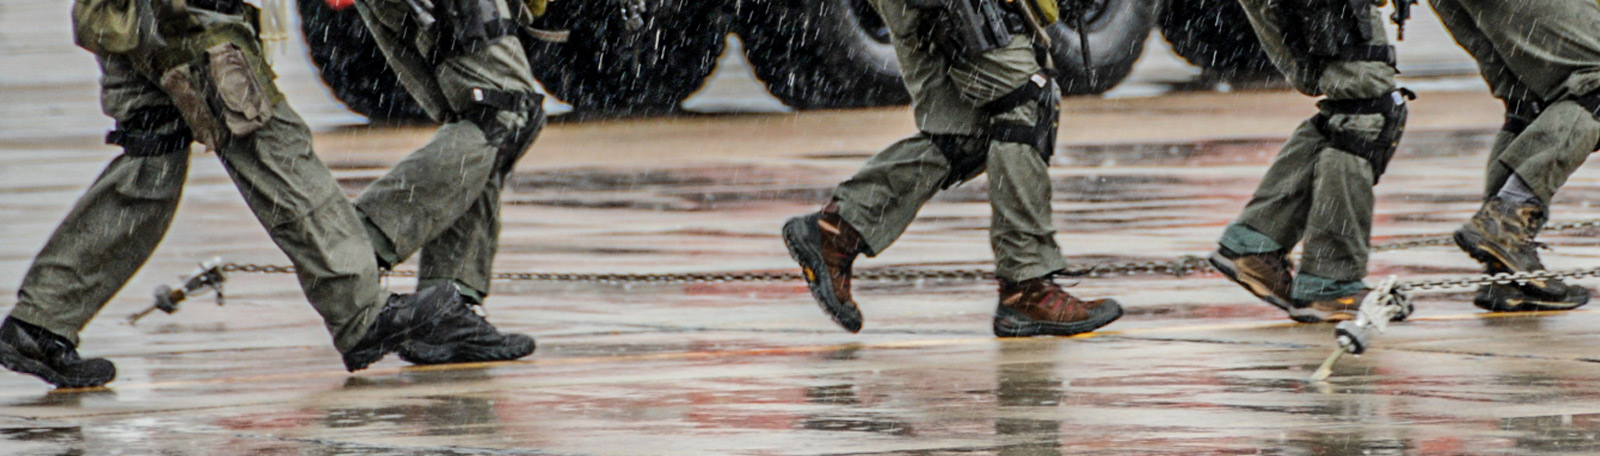 Footwear - Tactical Boots Category